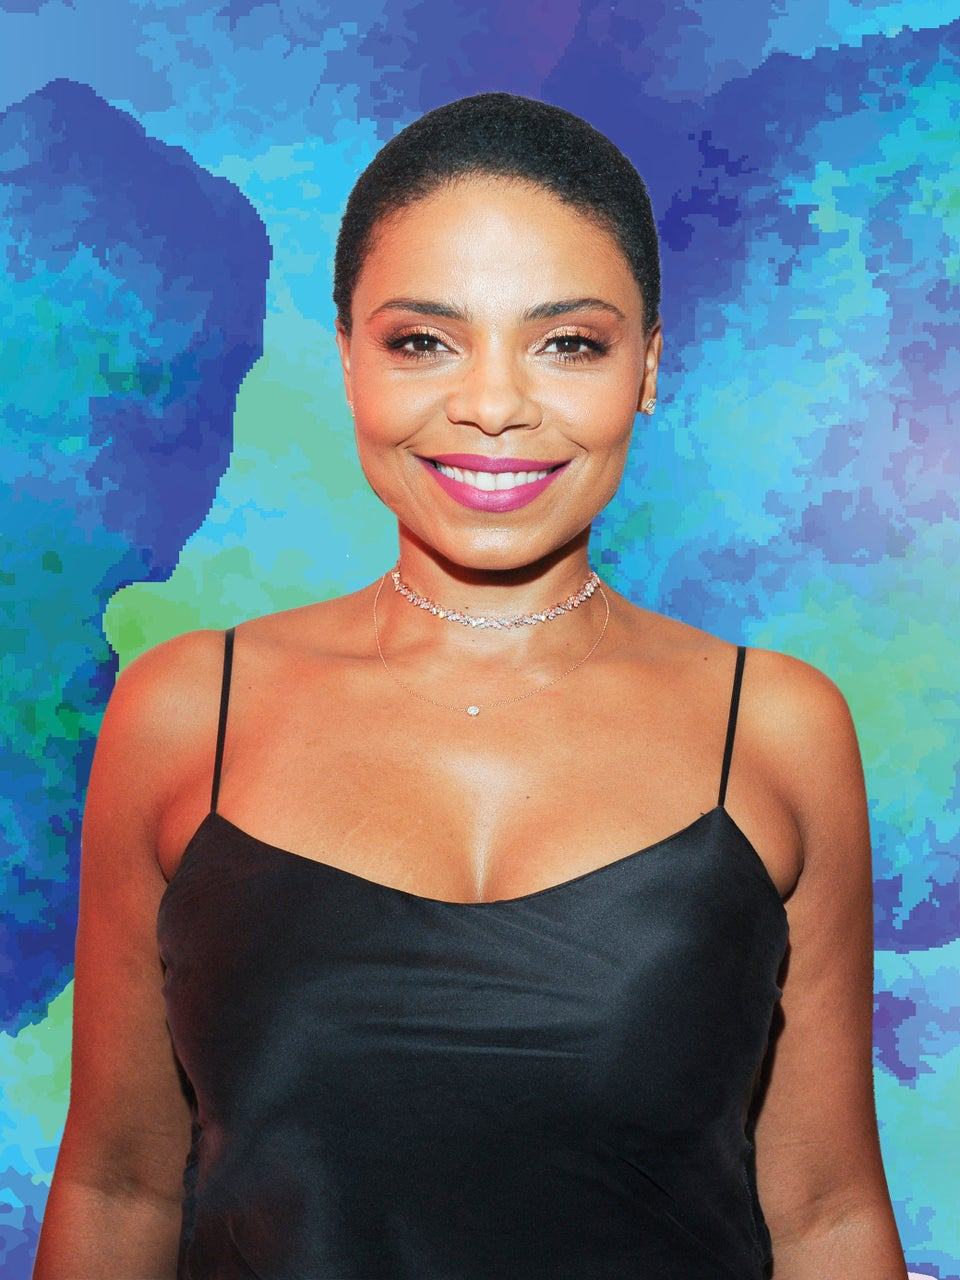 Sanaa Lathan Is Beautiful And Absolutely Glowing In Her Latest Photo Shoot